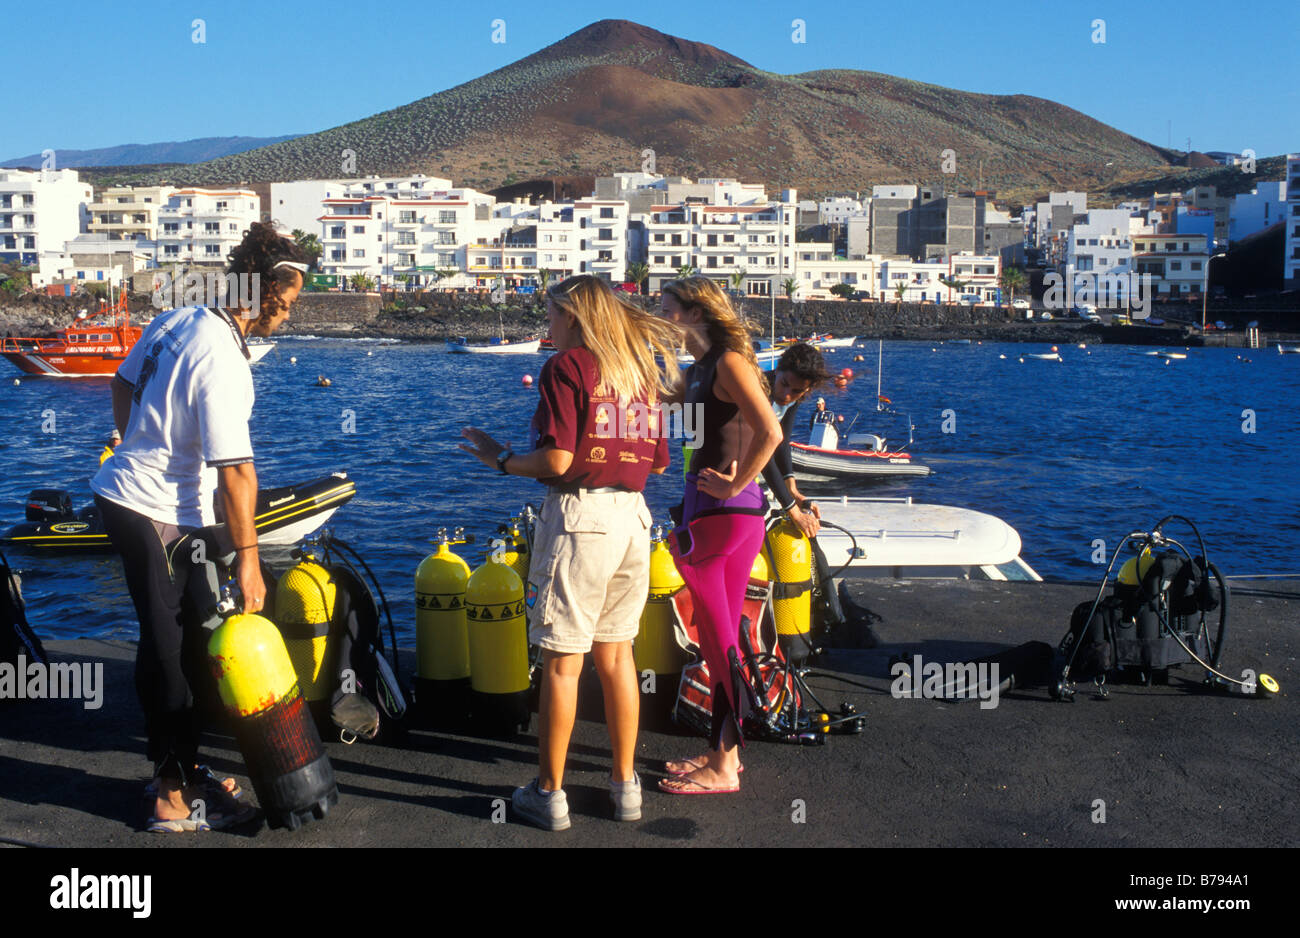 Skin Diver, Harbour, La Restinga, El Hierro Island, Canary Islands, Spain, Europe Stock Photo